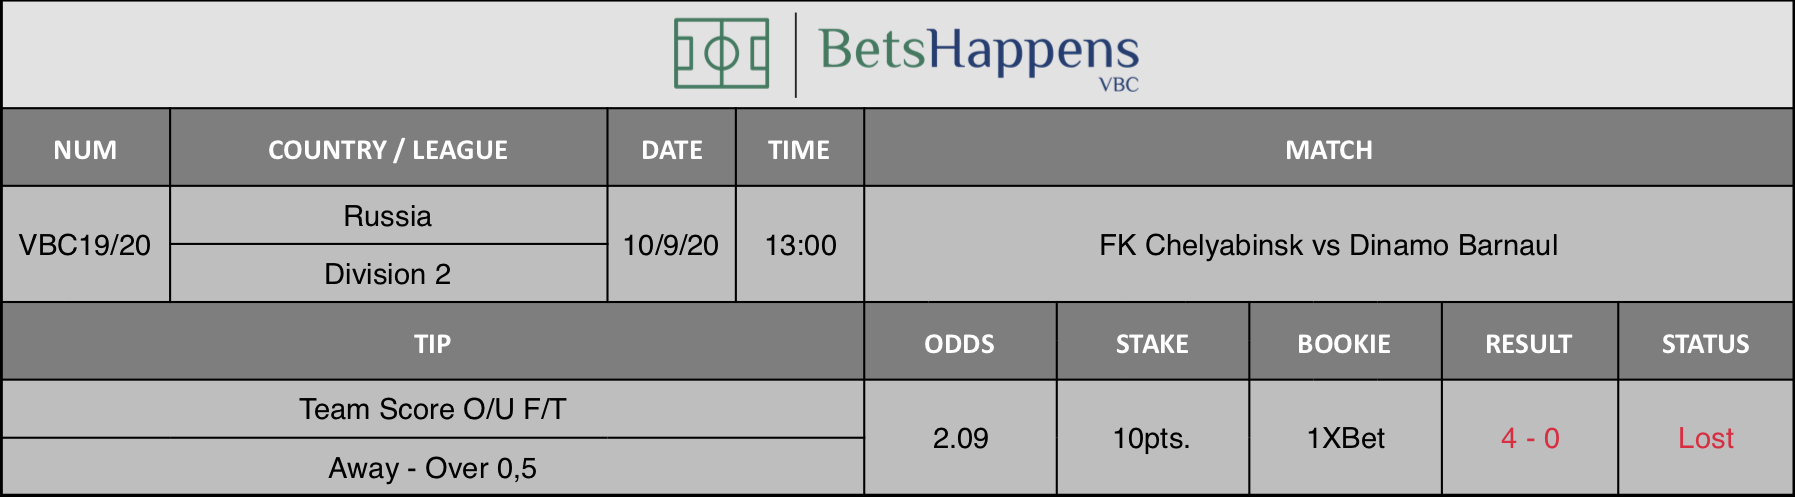 Results of our advice for the FK Chelyabinsk vs Dinamo Barnaul match in which Team Score O / U F / T Away Over 0.5 is recommended.